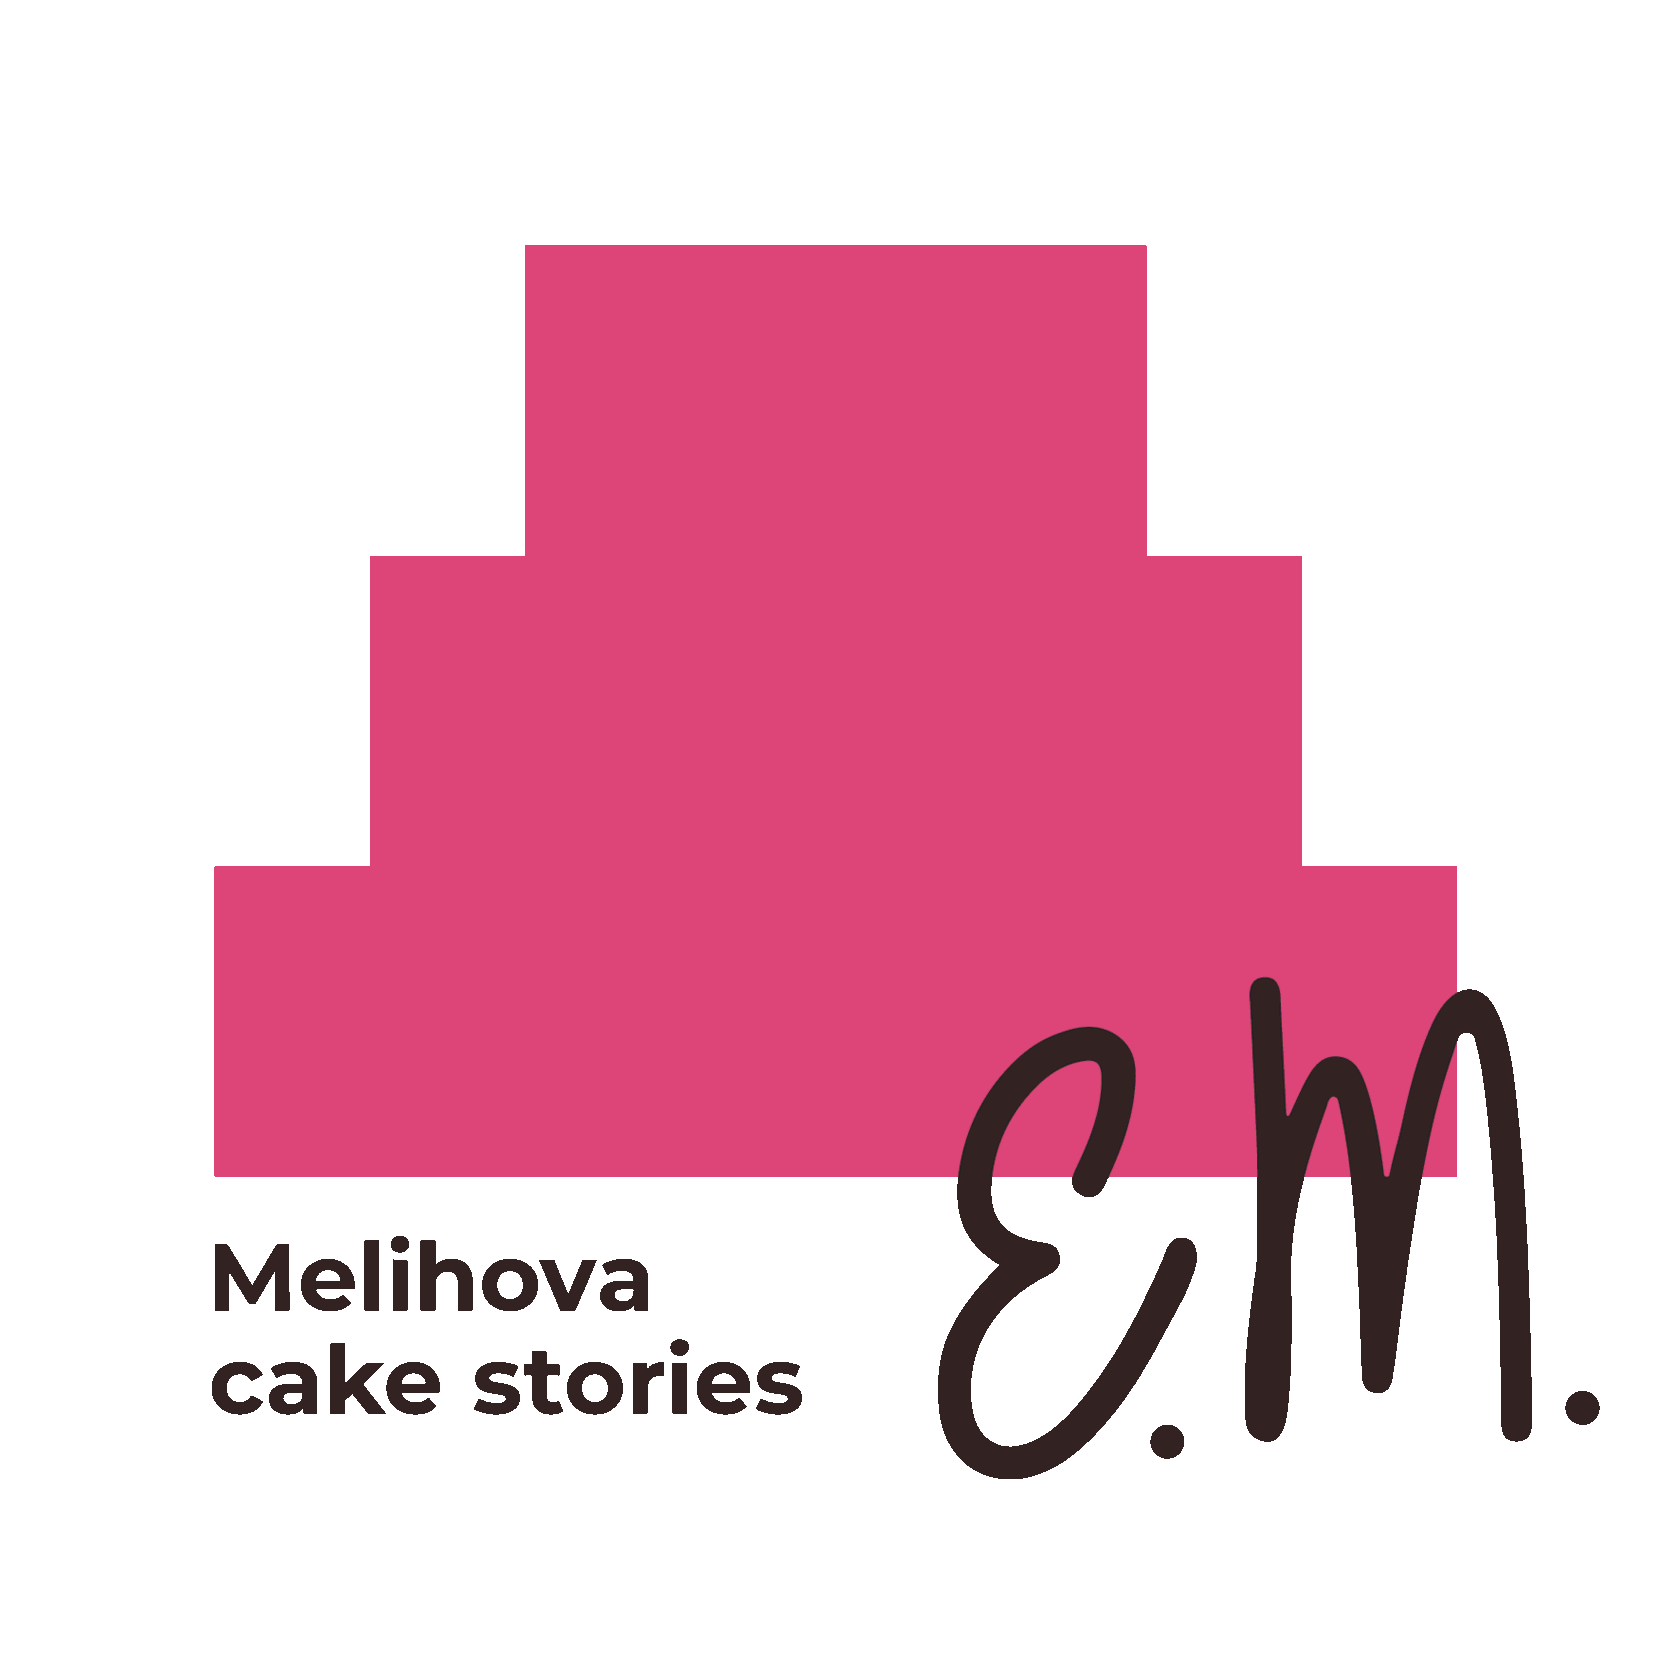 Melihova Cake Stories